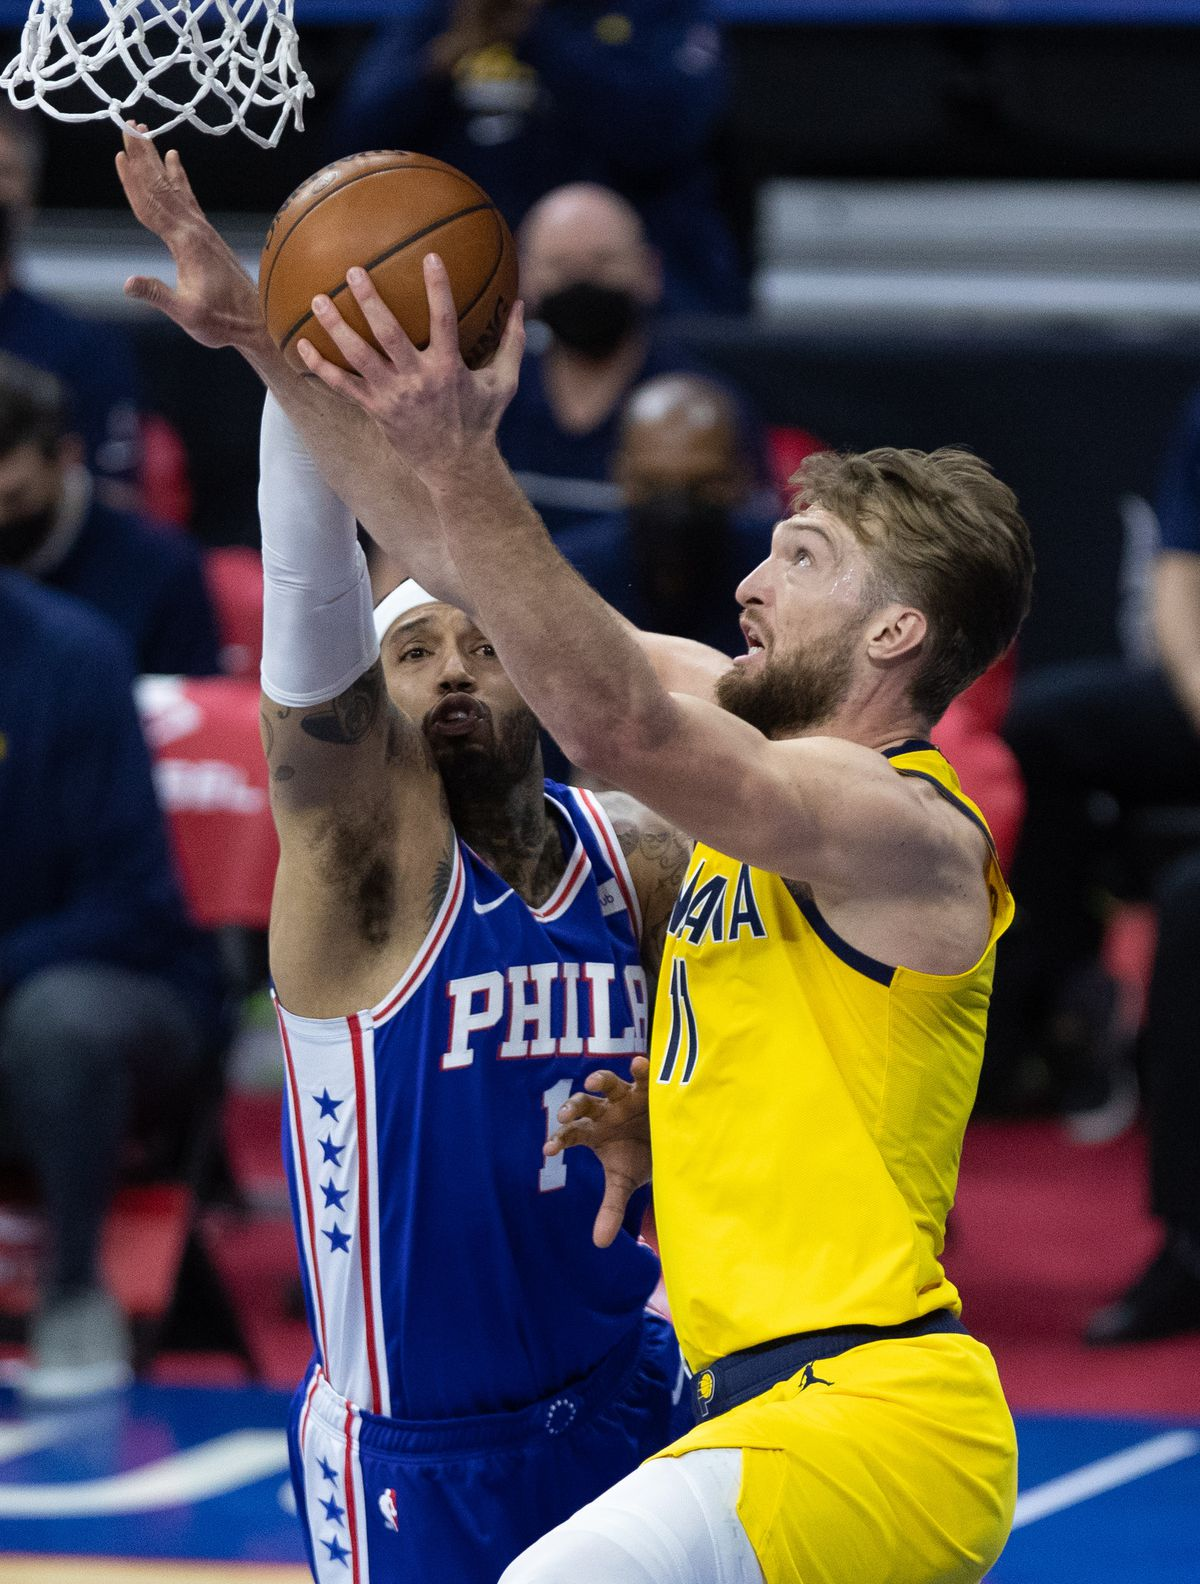 NBA: Indiana Pacers in Philadelphia 76ers